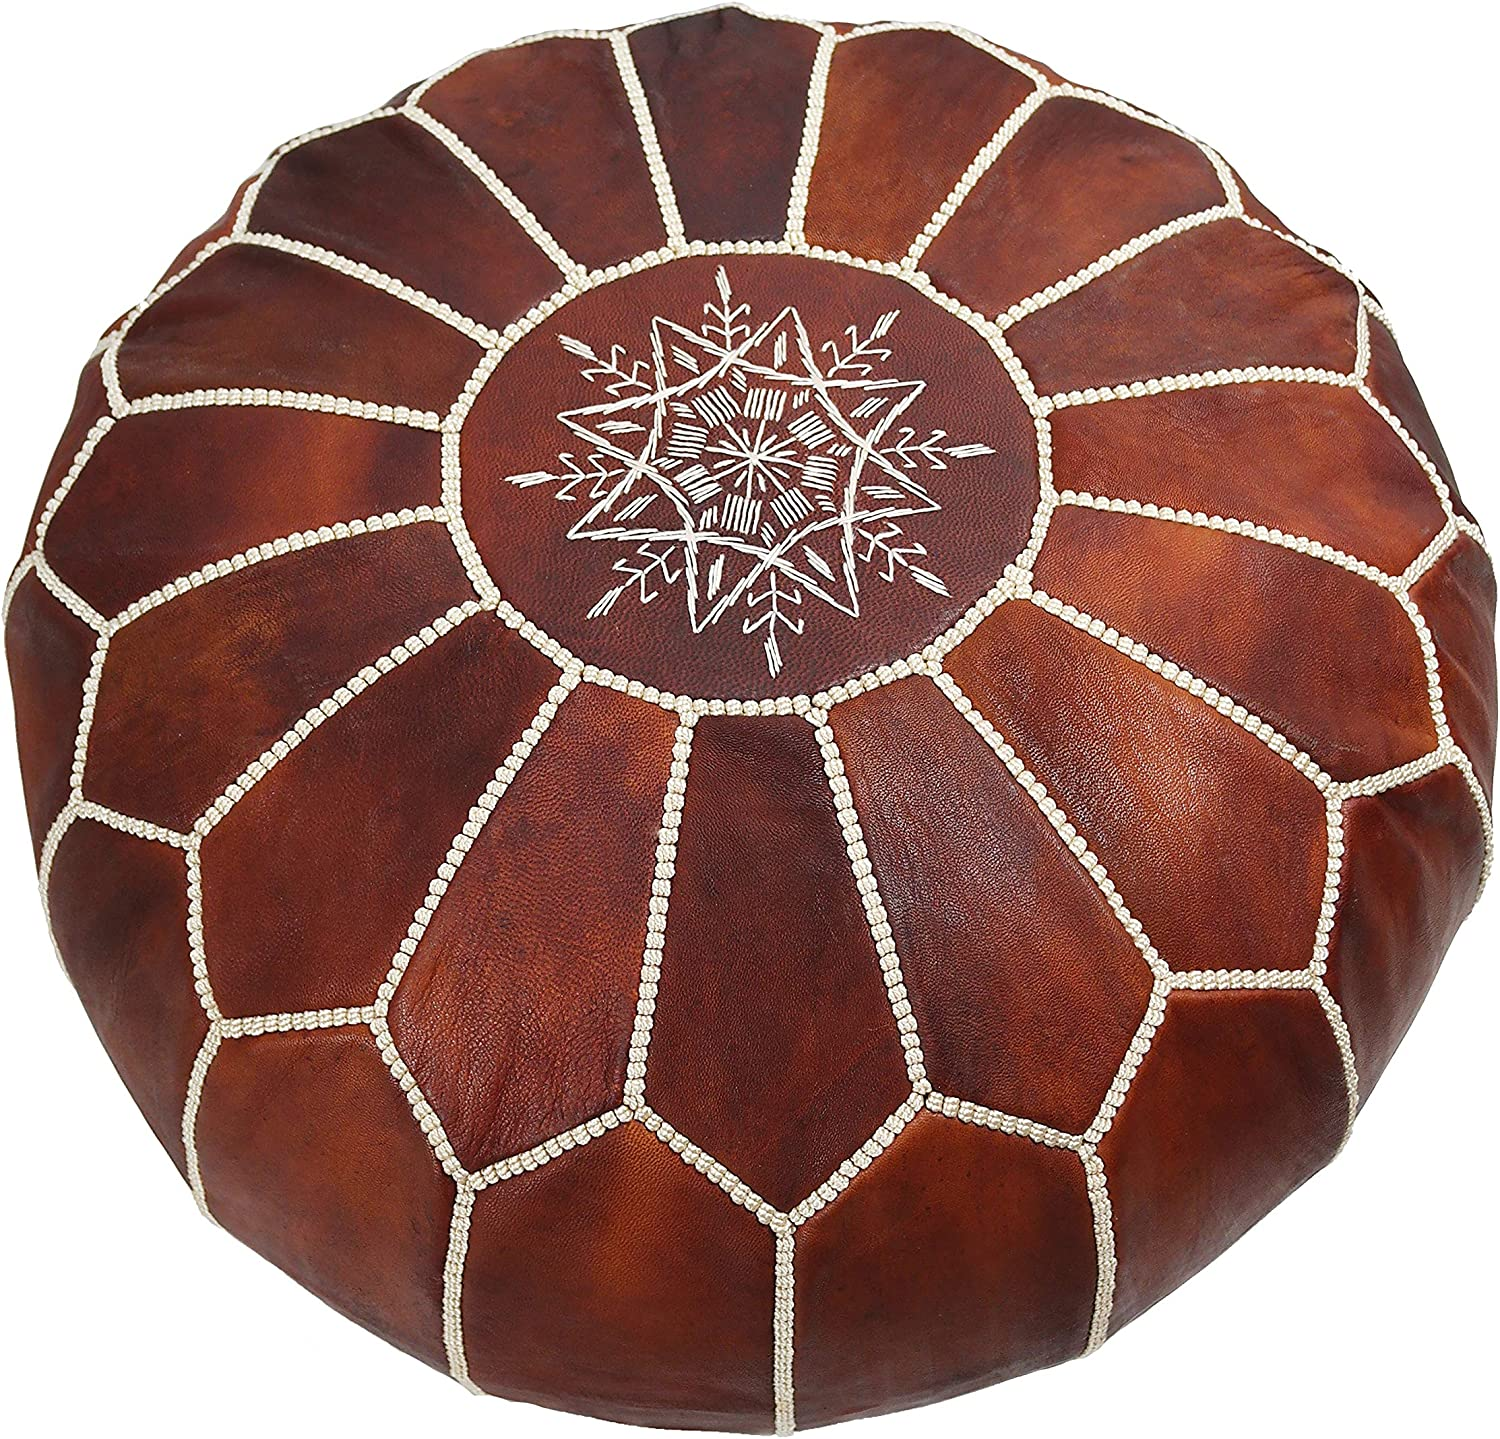 Handmade Moroccan Leather Pouf Marrakesh - Decorative Ottoman Footstool for Bohemian Living Room - Round & Large Ottoman Tan Pouf with White Stitching - Unstuffed (Dark Brown)